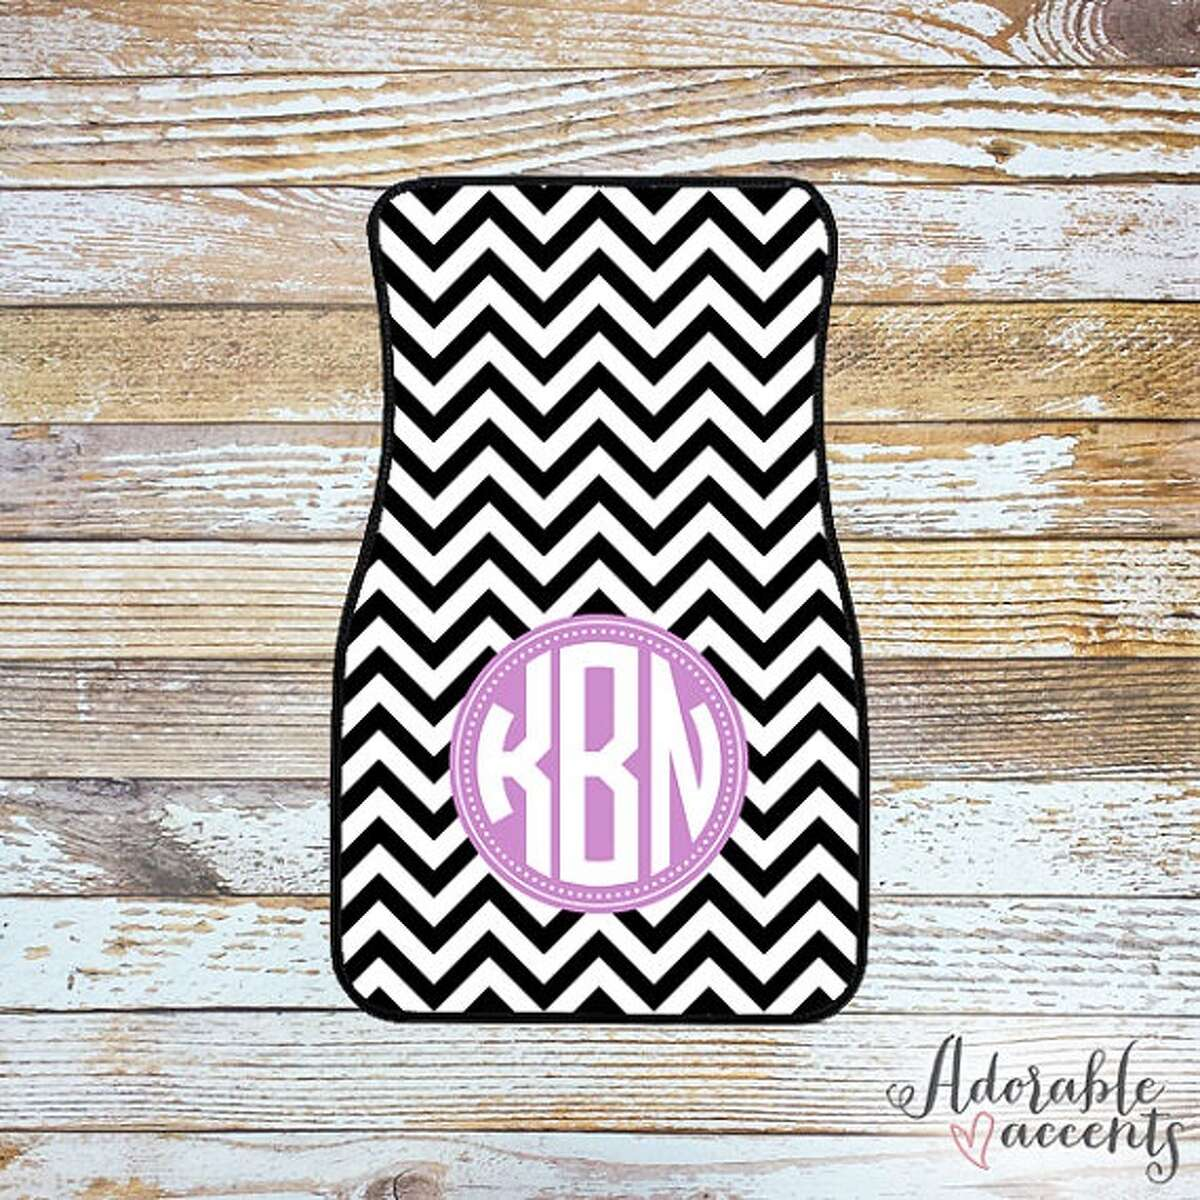 Monogrammed car mats : The commuter who likes to add personality to his or her car will love this Etsy account's custom car mats. Make them truly custom by having them monogrammed with the car owner's initials. Pictured here is Shop Adorable's mat. Price: Various based on initials/style; starts at $37.95